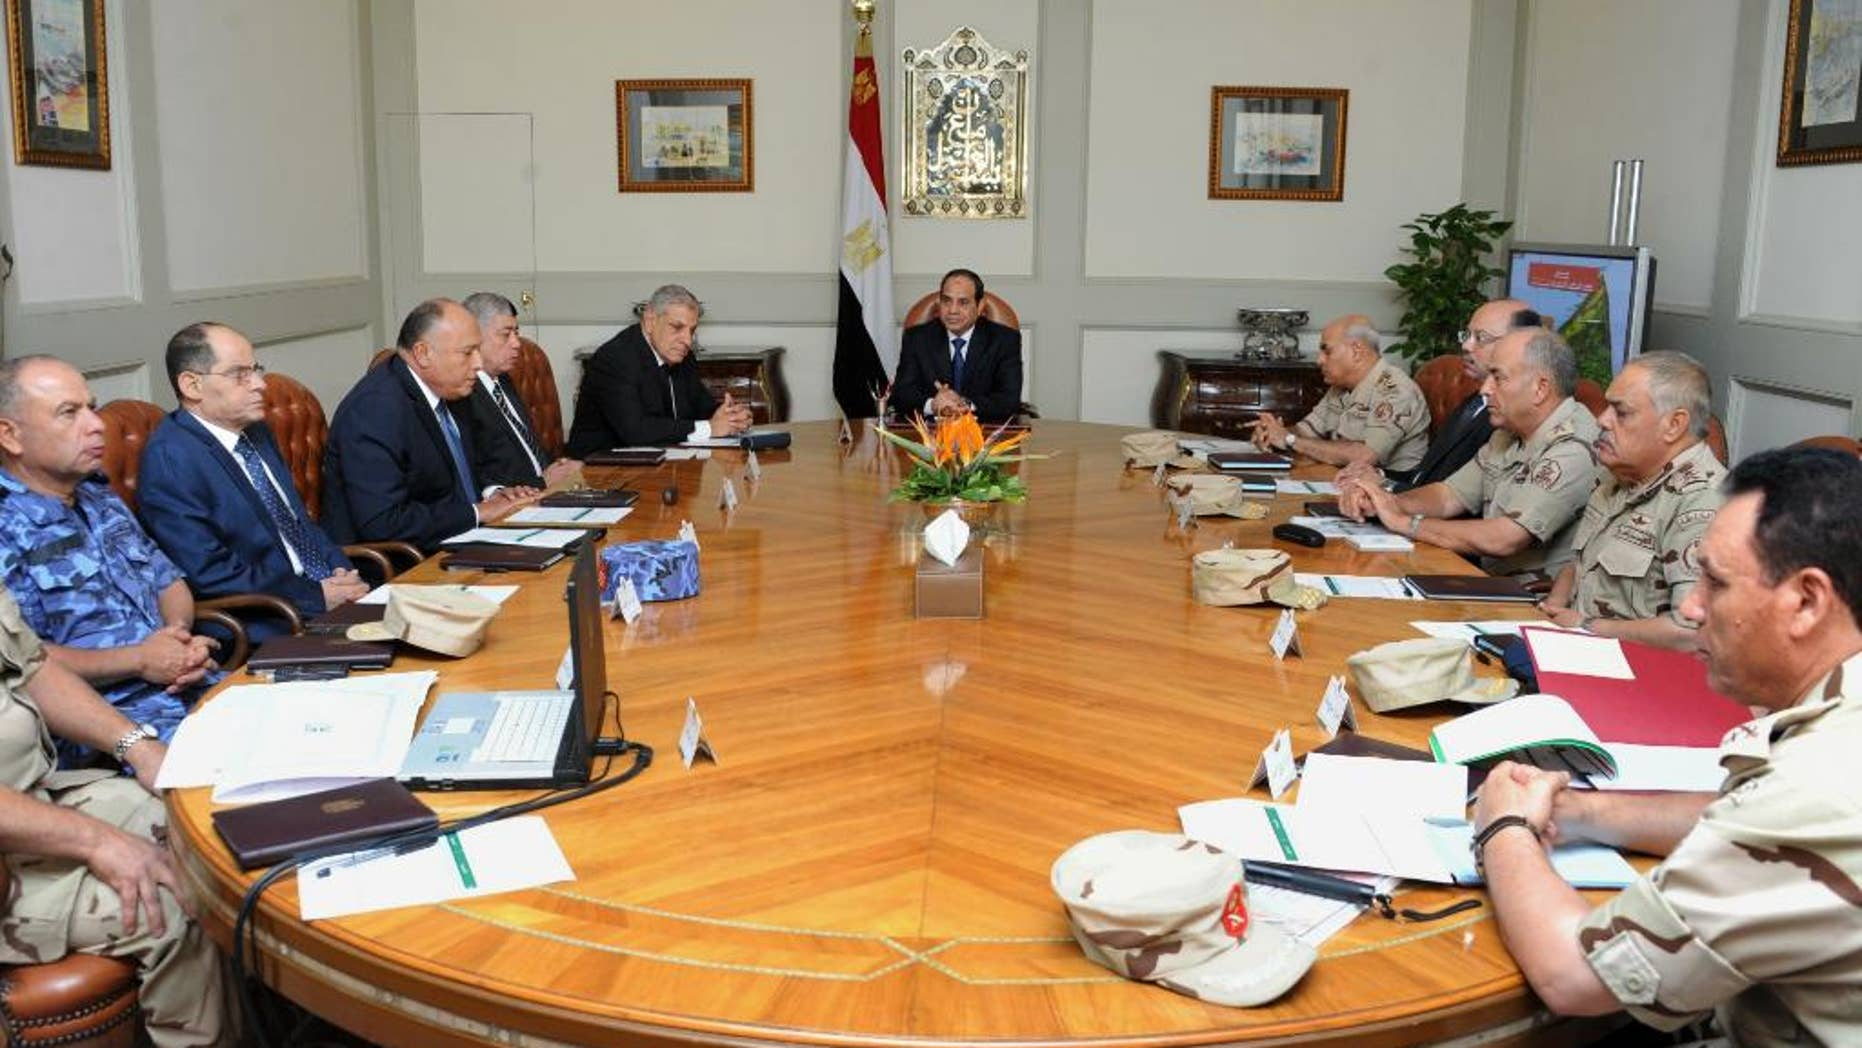 In this photo provided by Egypt's state news agency MENA, Egypt's President Abdel-Fattah el-Sissi, center, holds an emergency meeting of the National Defense Council with top officials after an attack in the Sinai Peninsula, in Cairo, Egypt, Friday, Oct. 24, 2014. The coordinated assault on an army checkpoint in the Sinai Peninsula killed 30 Egyptian troops on Friday, making it the deadliest single attack in decades on the military, which has been struggling to stem a wave of violence by Islamic extremists since the overthrow of Islamist President Mohammed Morsi. El-Sissi, the former defense minister and army chief who overthrew Morsi last year, declared a three-day mourning period. (AP Photo/MENA)